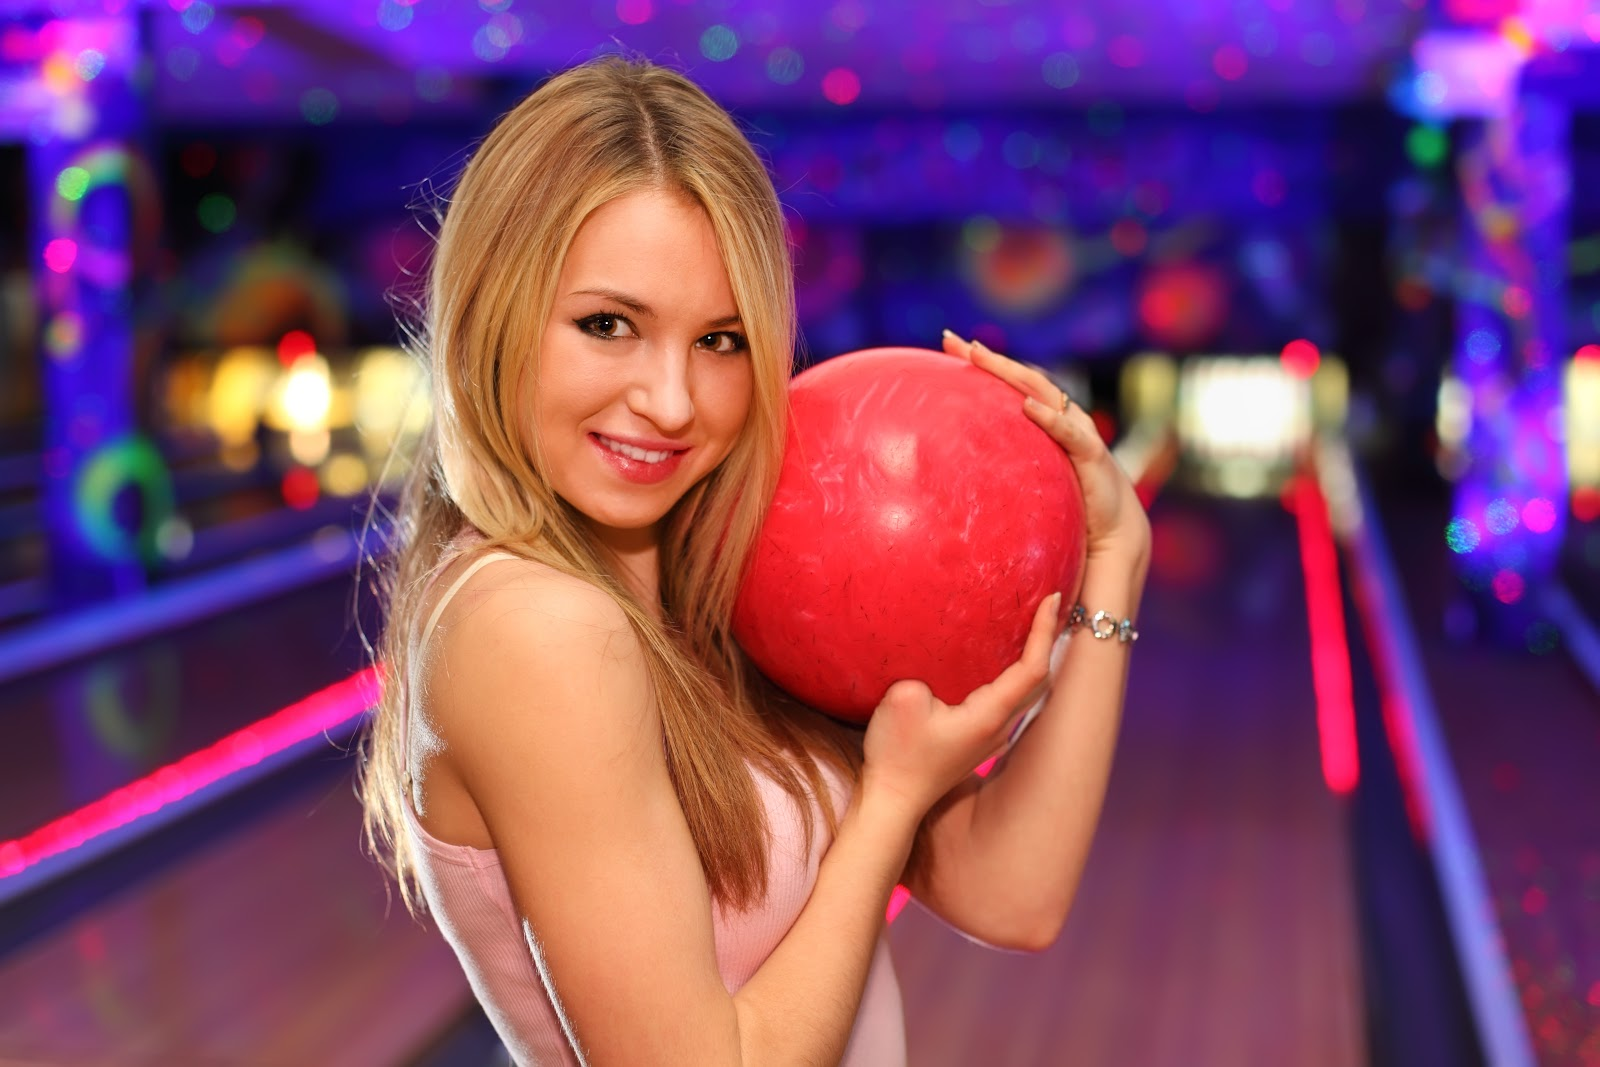 attractions for all ages | glow bowling | galactic glow bowling | super bowl family entertainment center | appleton, wi